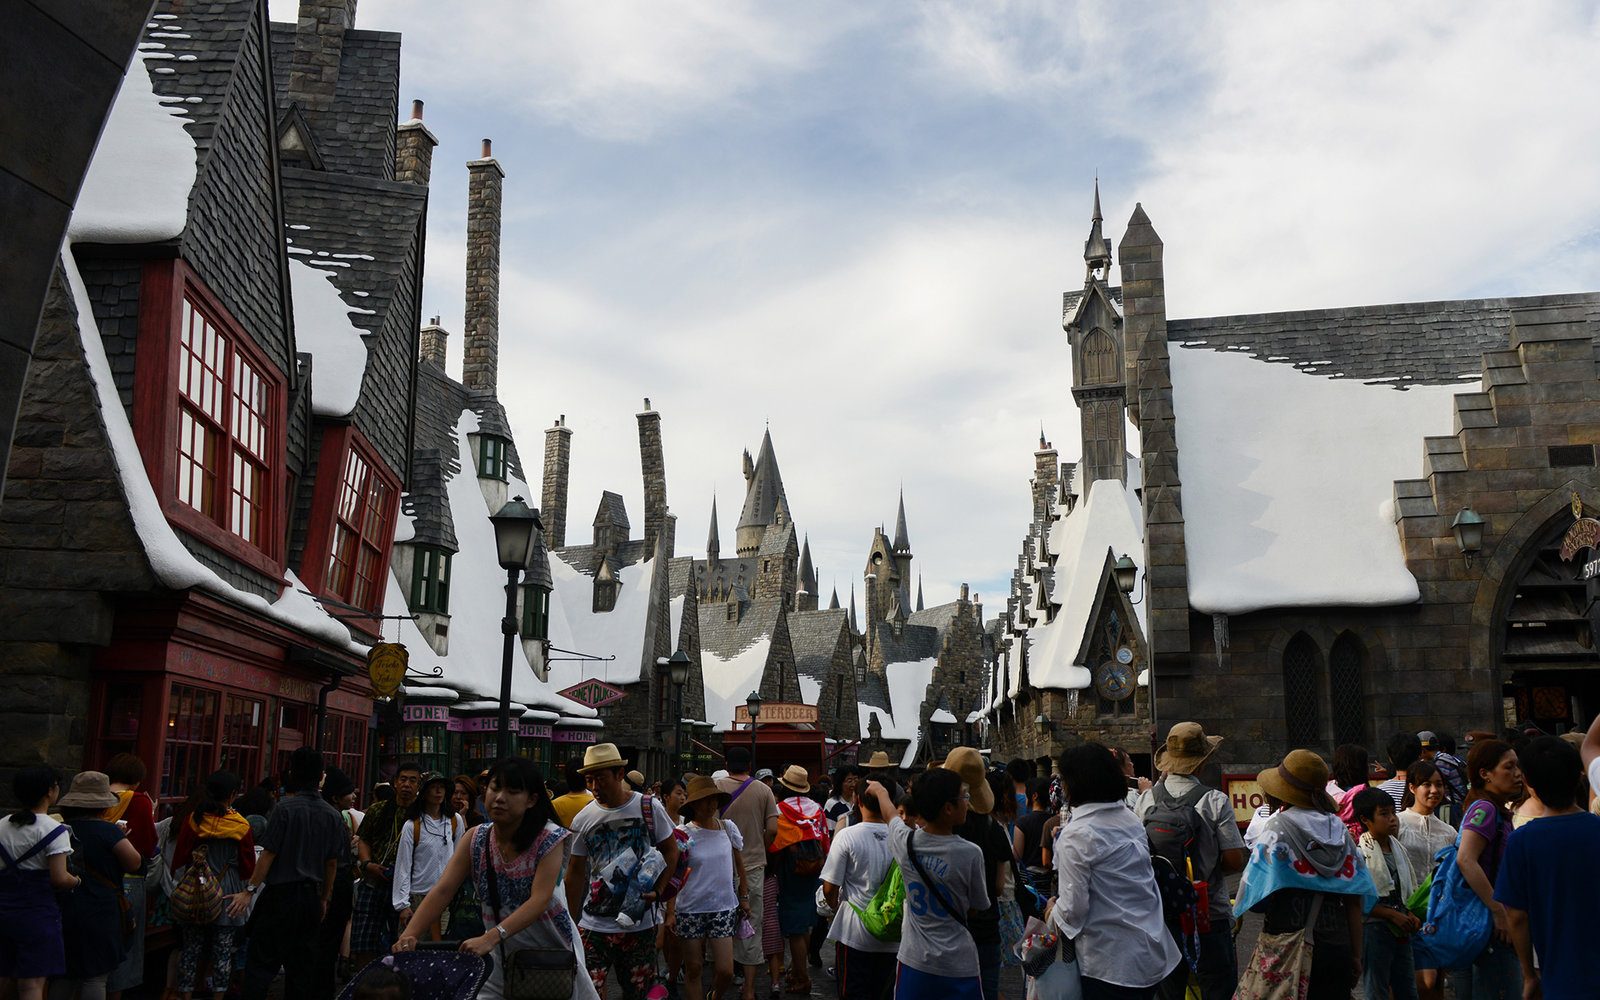 Visitors walk through The Wizarding World of Harry Potter themed area at Universal Studios Japan, operated by USJ Co., in Osaka, Japan, on Thursday, Aug. 7, 2014. USJ is counting on its cachet turning around a failing Universal Studios theme park in Japan